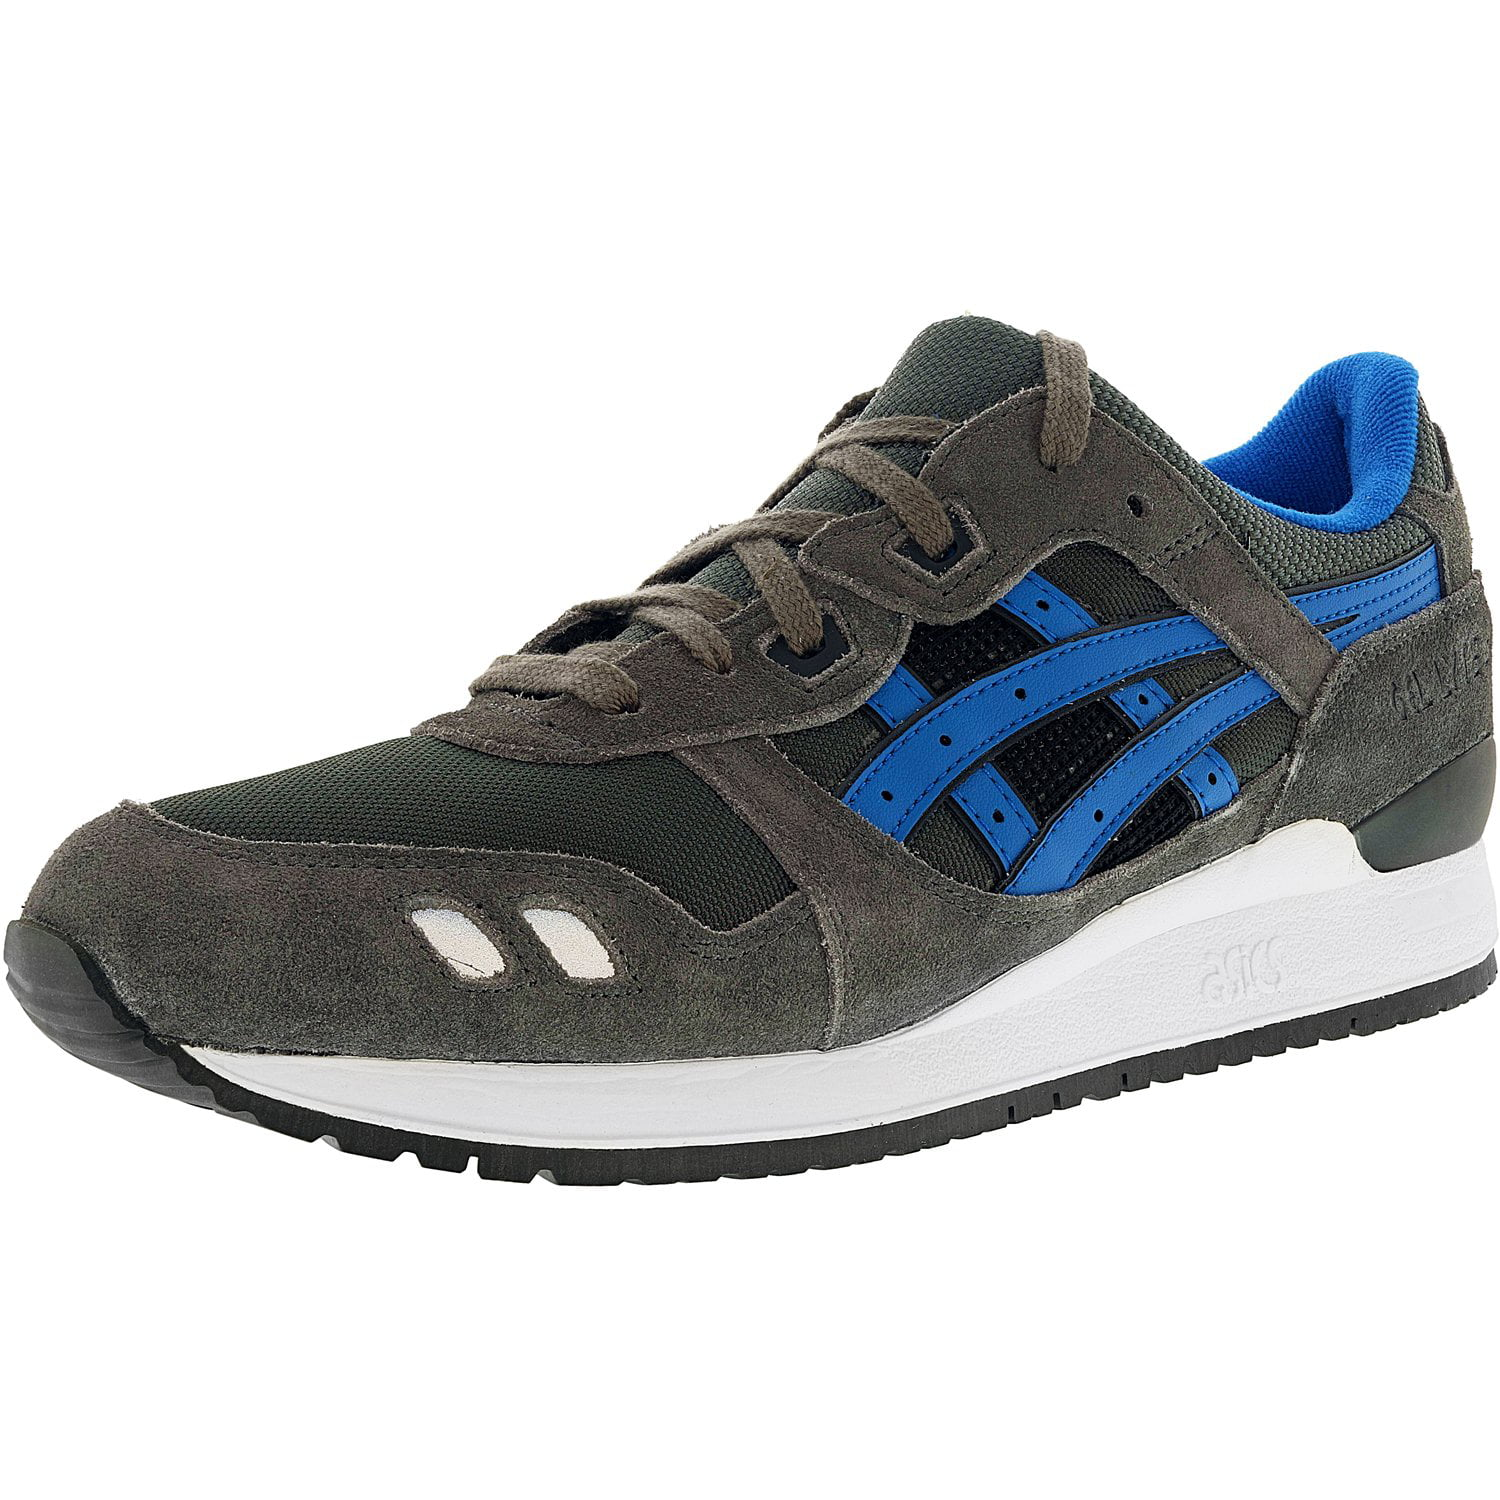 Asics Men's Gel Lyte Iii GreyMid Blue Ankle High Leather Running Shoe 11M